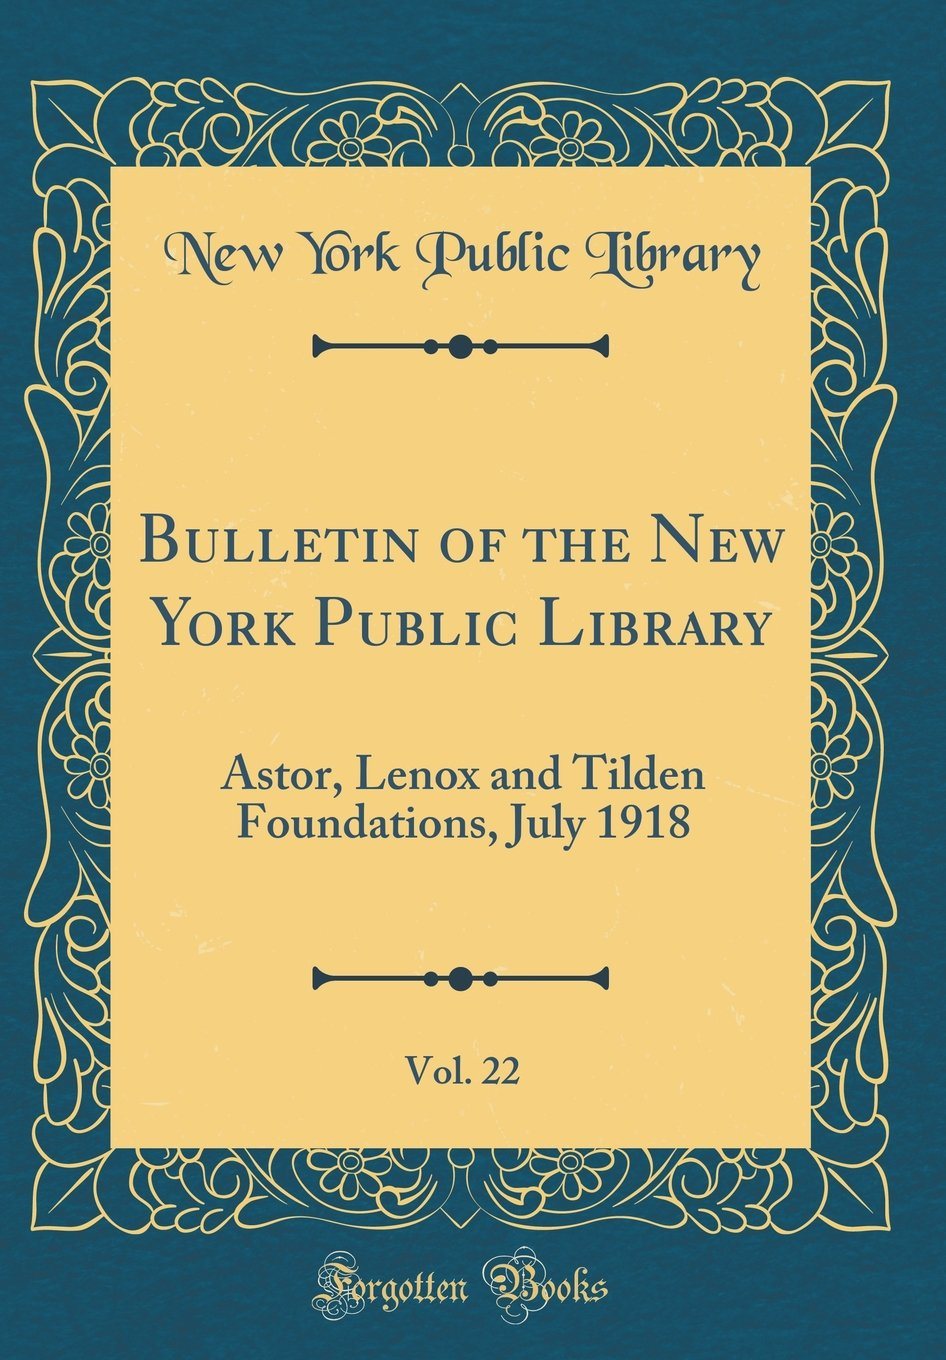 Download Bulletin of the New York Public Library, Vol. 22: Astor, Lenox and Tilden Foundations, July 1918 (Classic Reprint) pdf epub